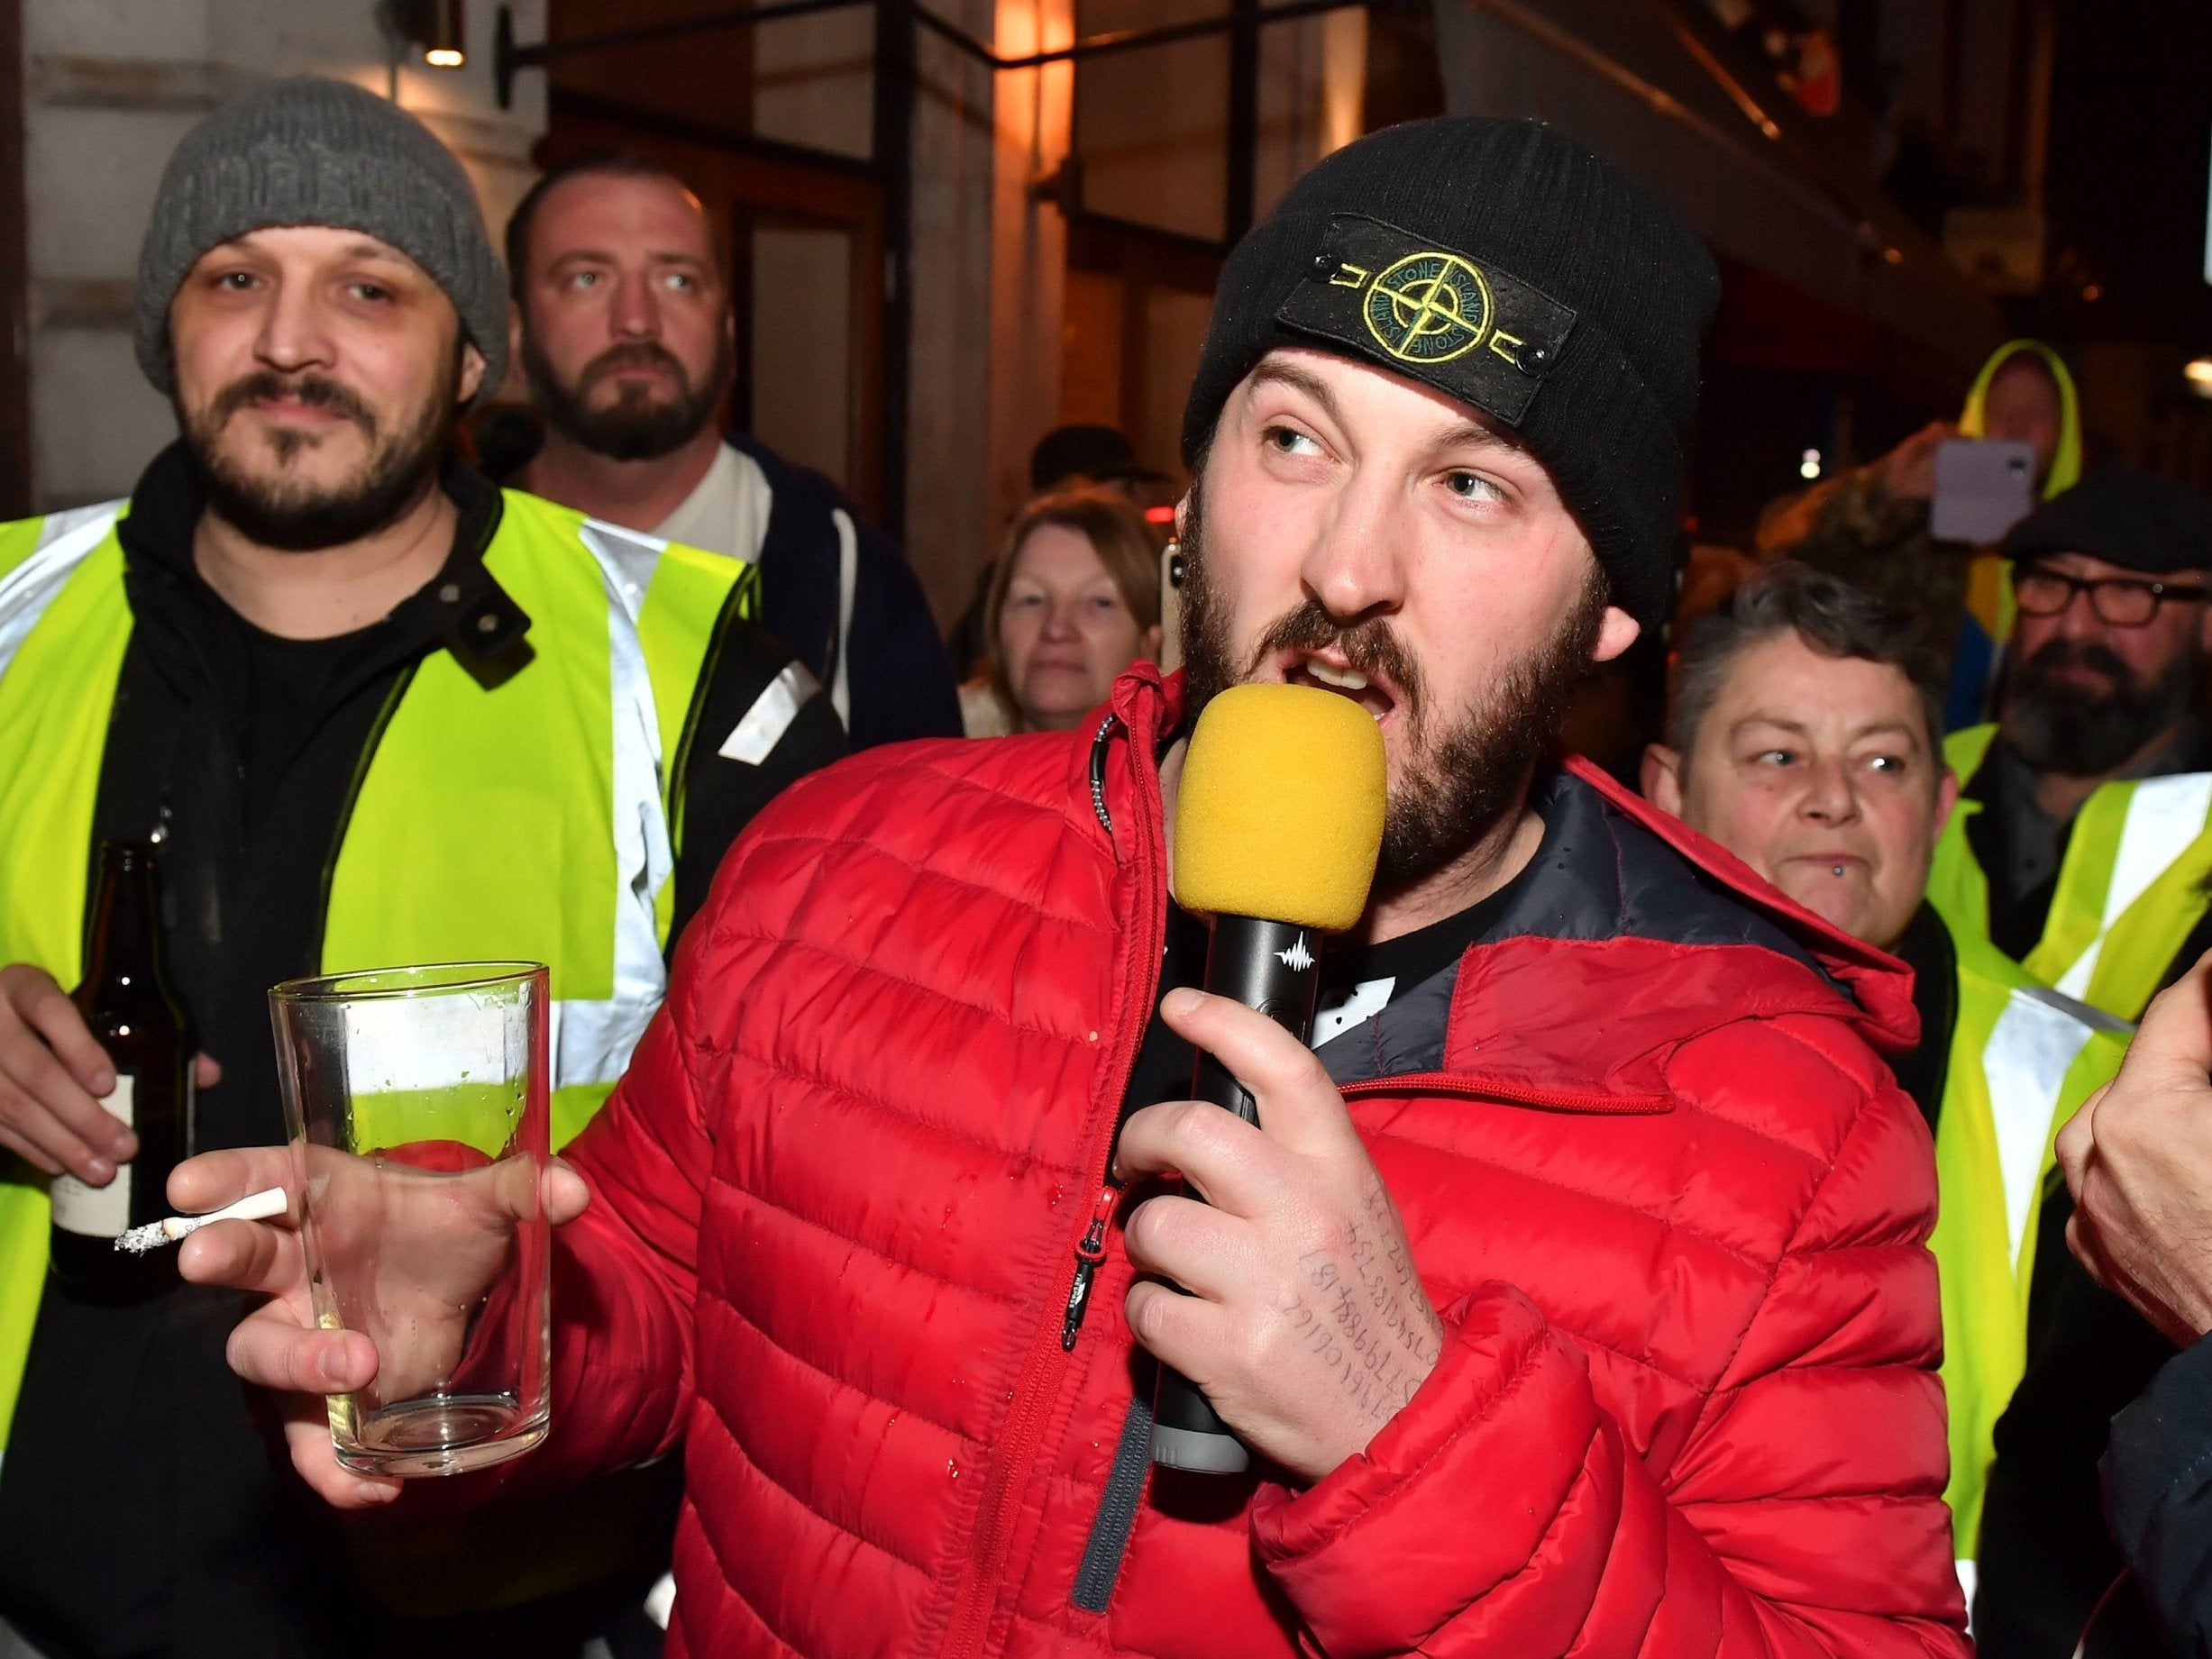 James Goddard: 'Yellow vest' organiser charged with racially aggravated harassment